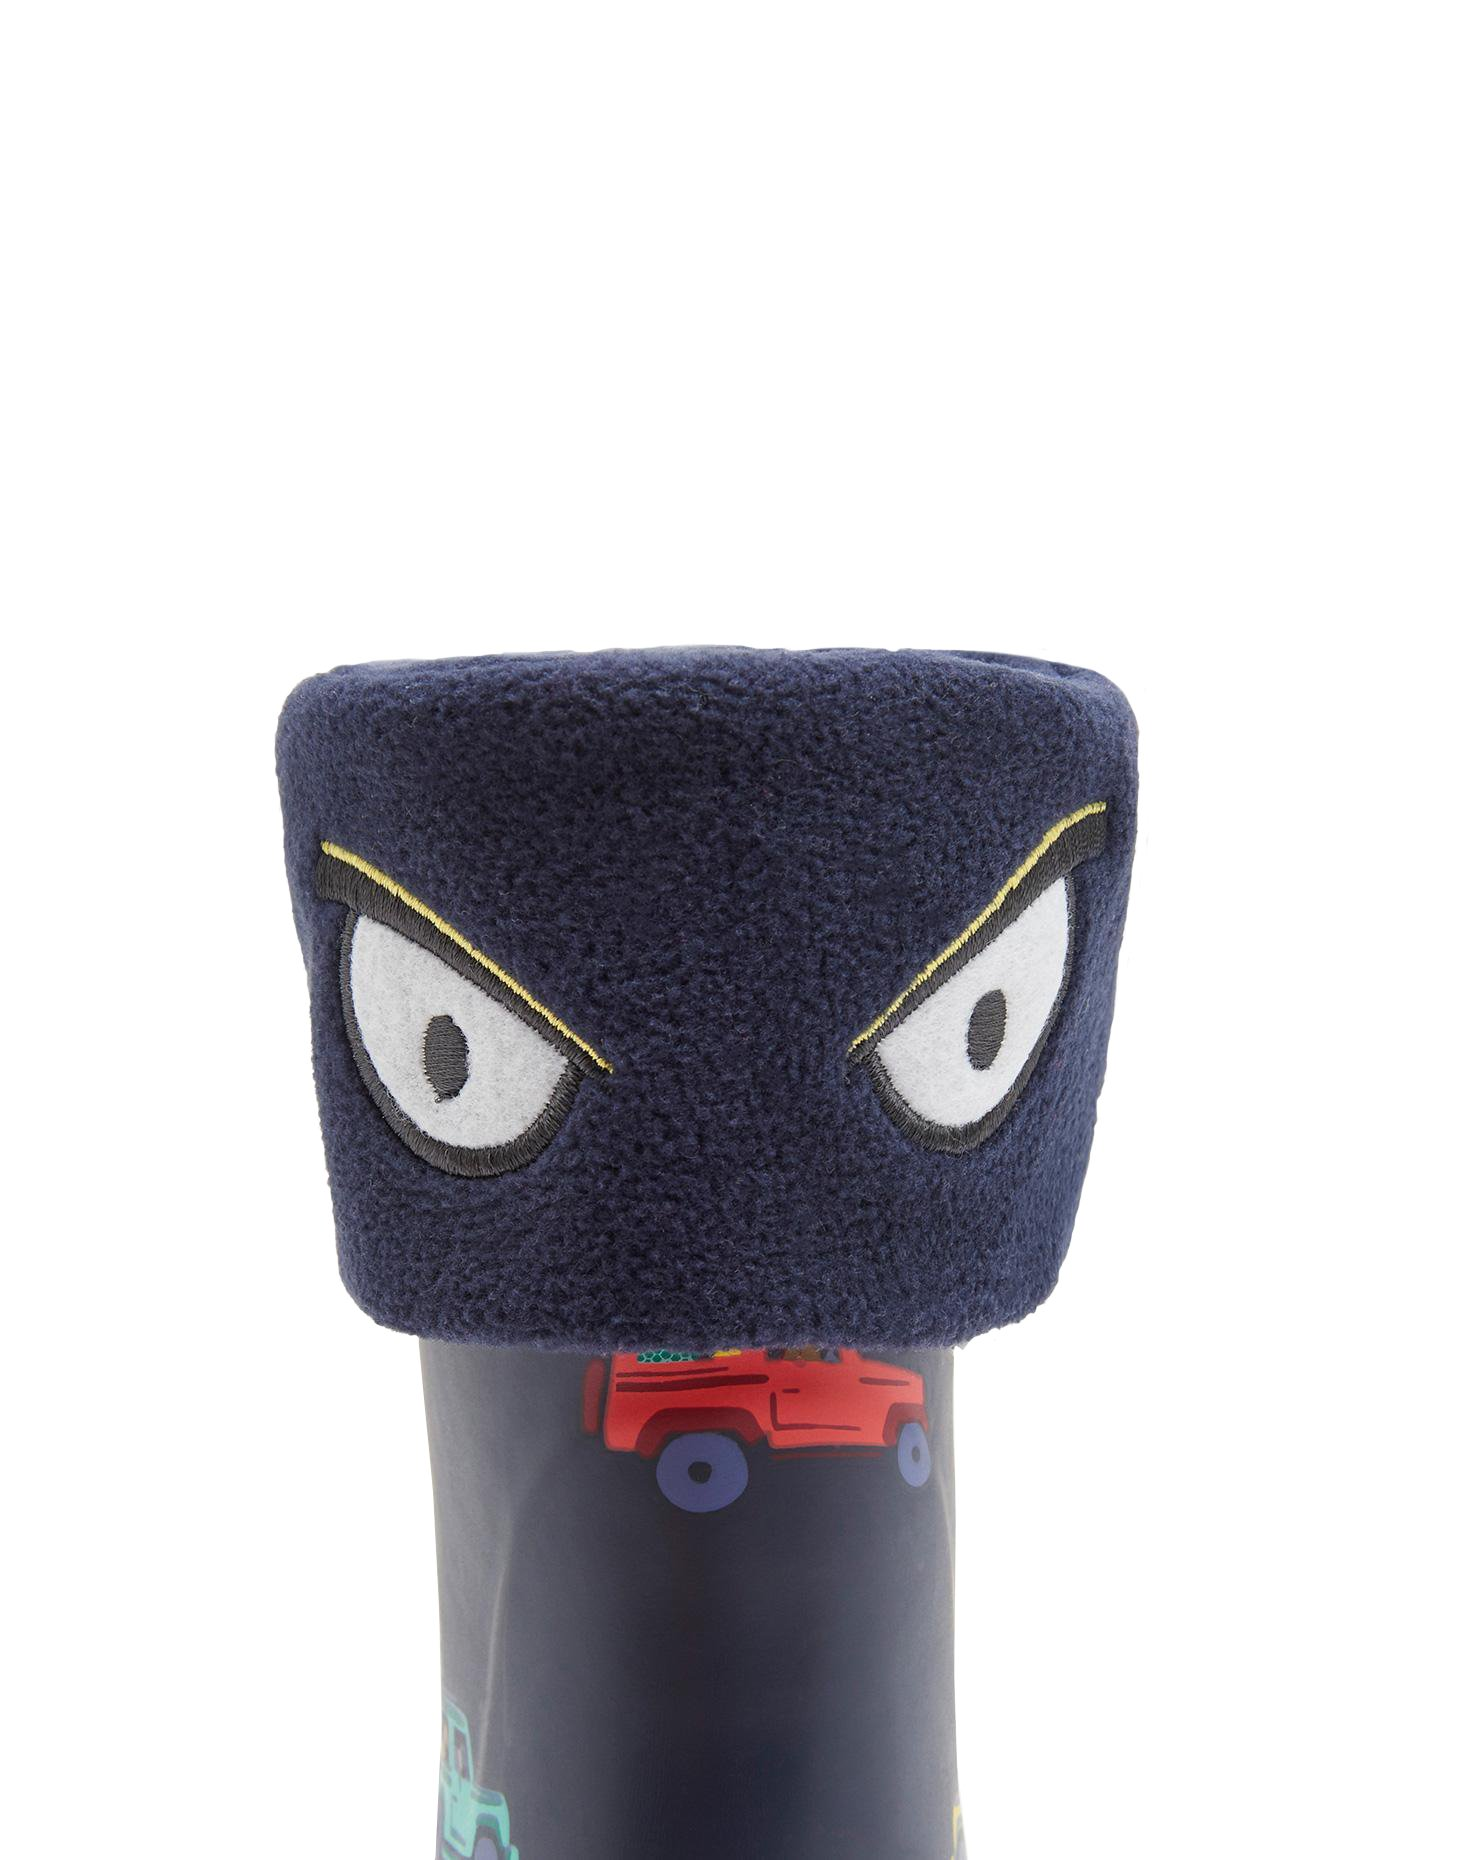 Joules Character Welly Socks - Navy Eyes - UK 1-3 / EU 33-36 / US 2-4 by Joules